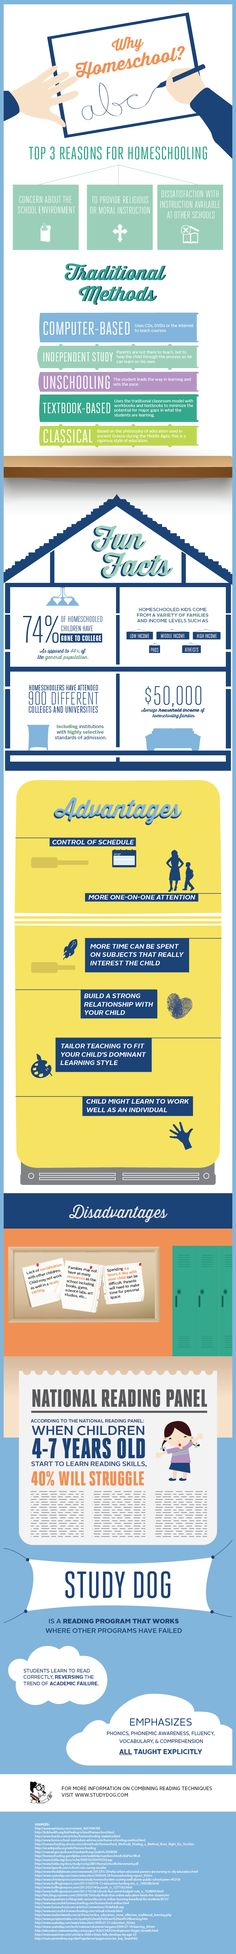 Why homeschooling? #infographic